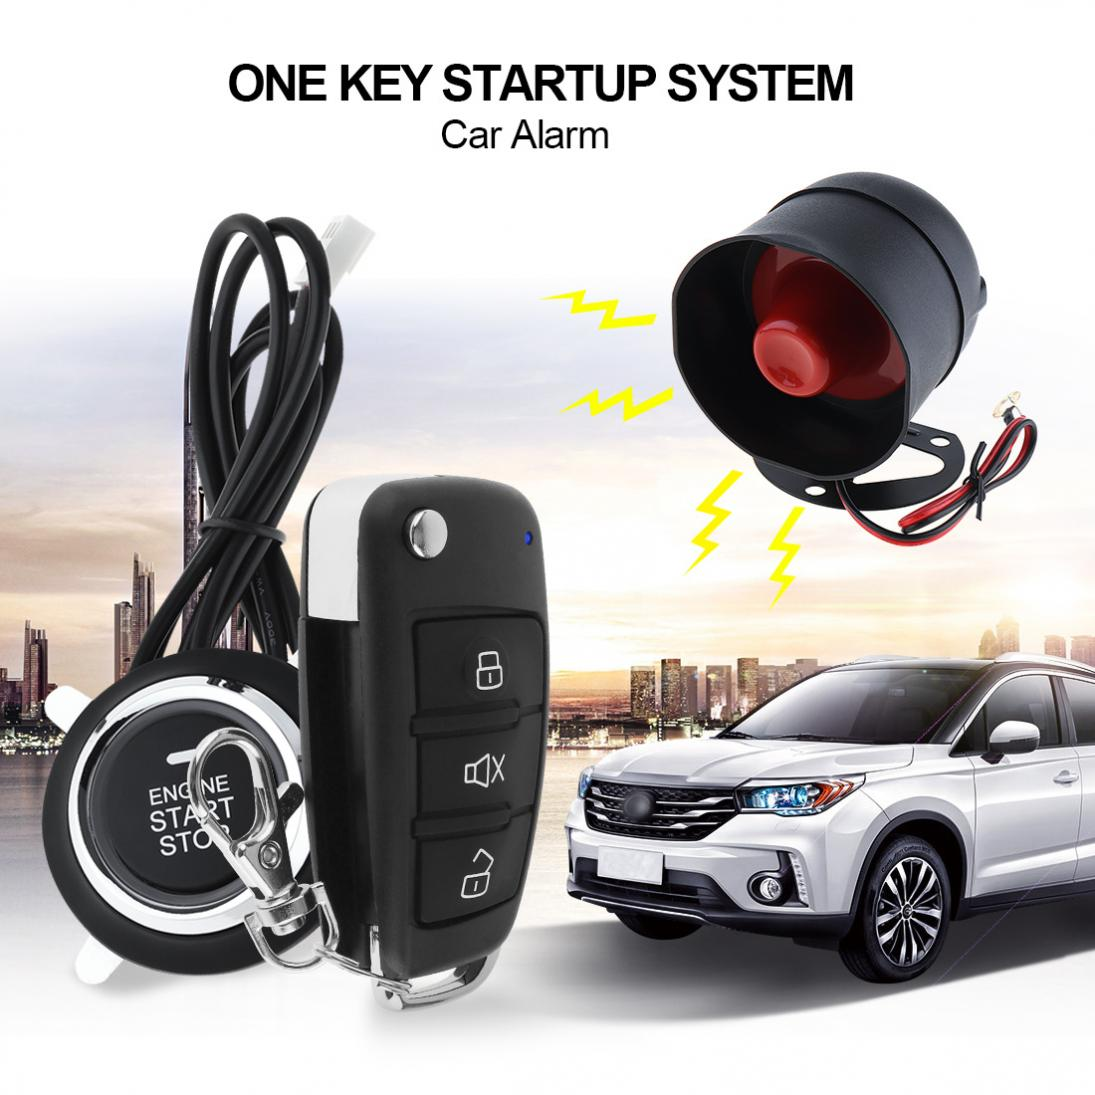 Universal Car Alarm System Remote Start Stop Engine System with Auto Central Lock and Keyless Entry easyguard car security alarm system with pke passive keyless entry remote lock remote engine start stop keyless go system dc12v